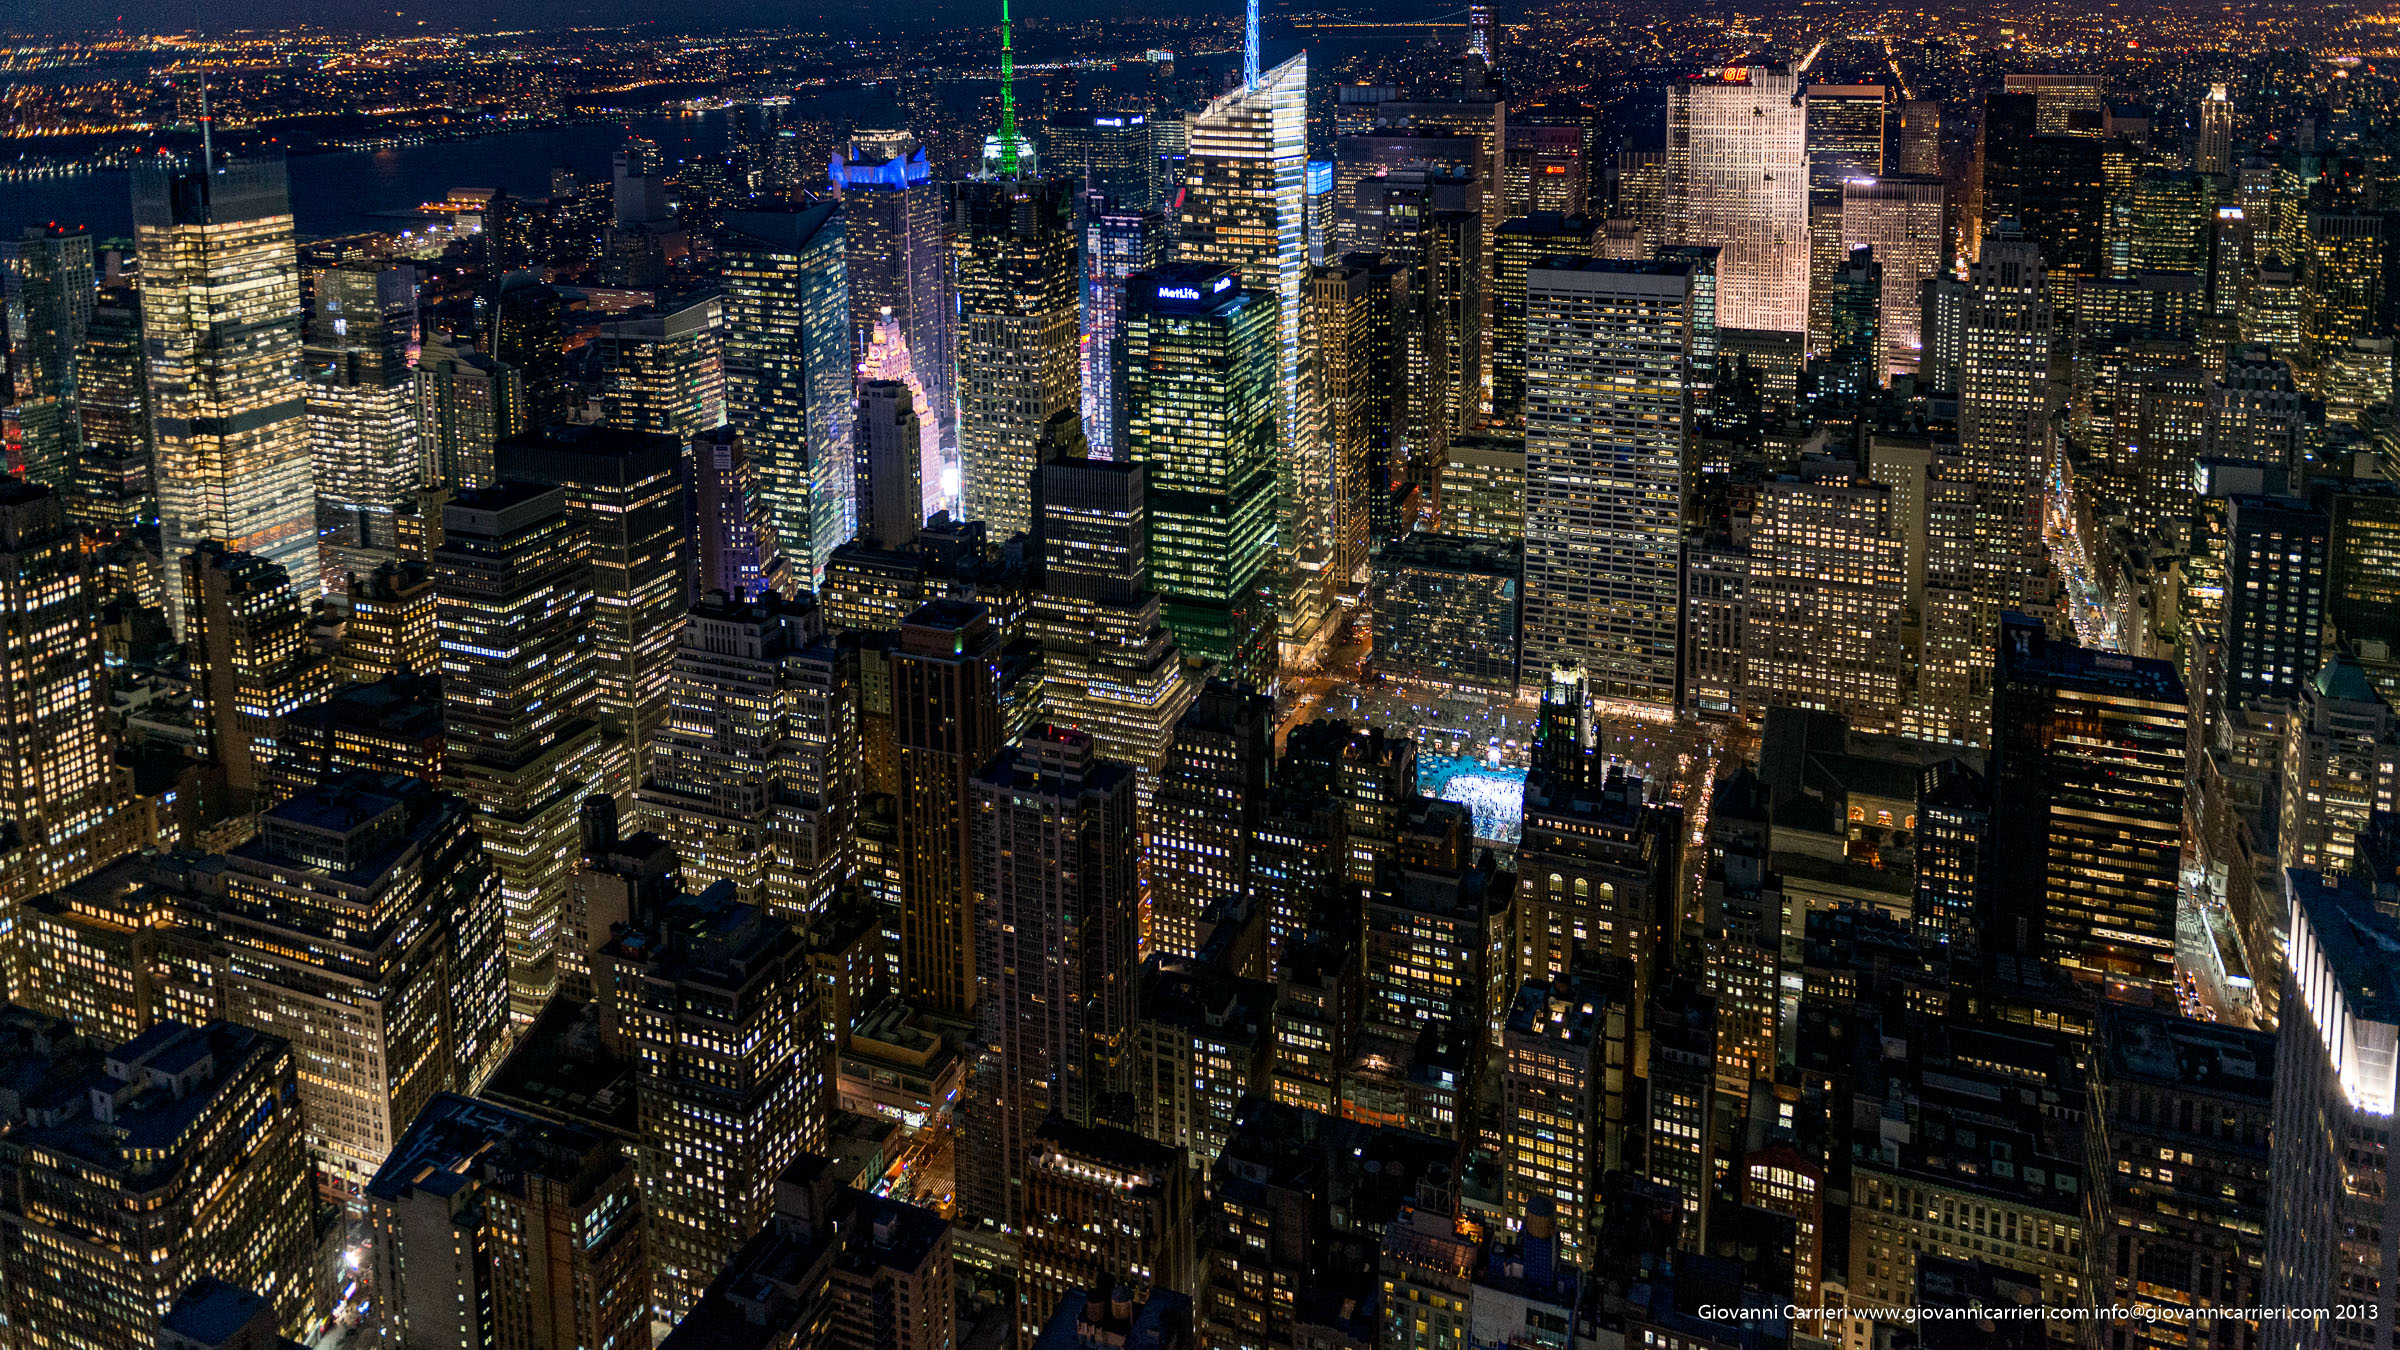 Il grattacielo Citigroup Center visto dall'Empire State Building